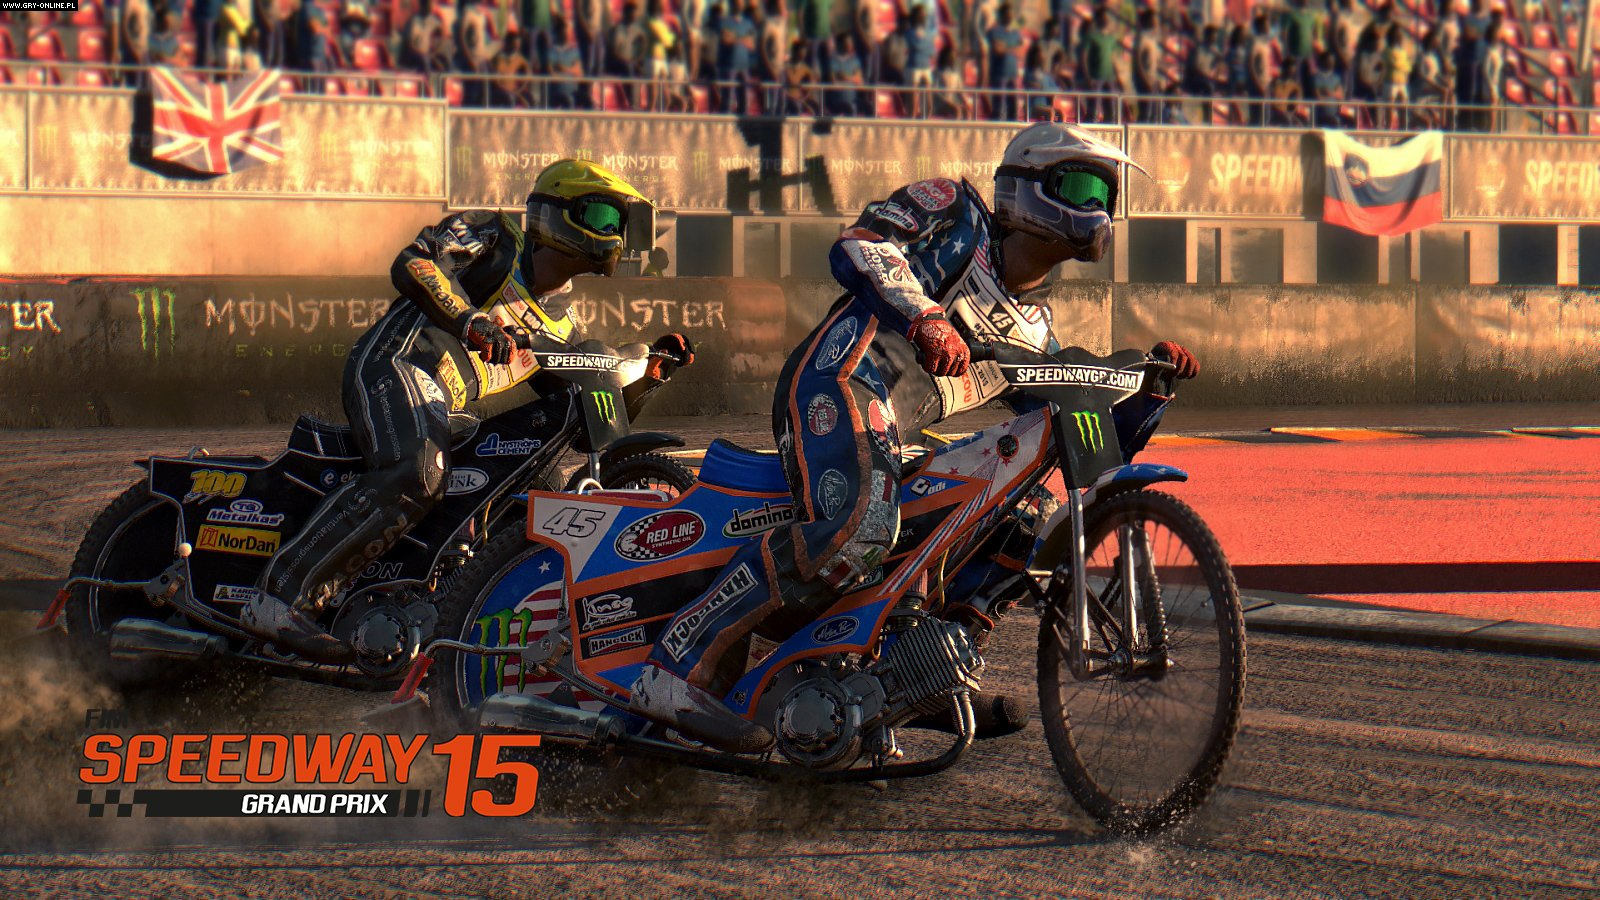 FIM Speedway Grand Prix 15 PC Gry Screen 7/10, Techland, Techland Publishing